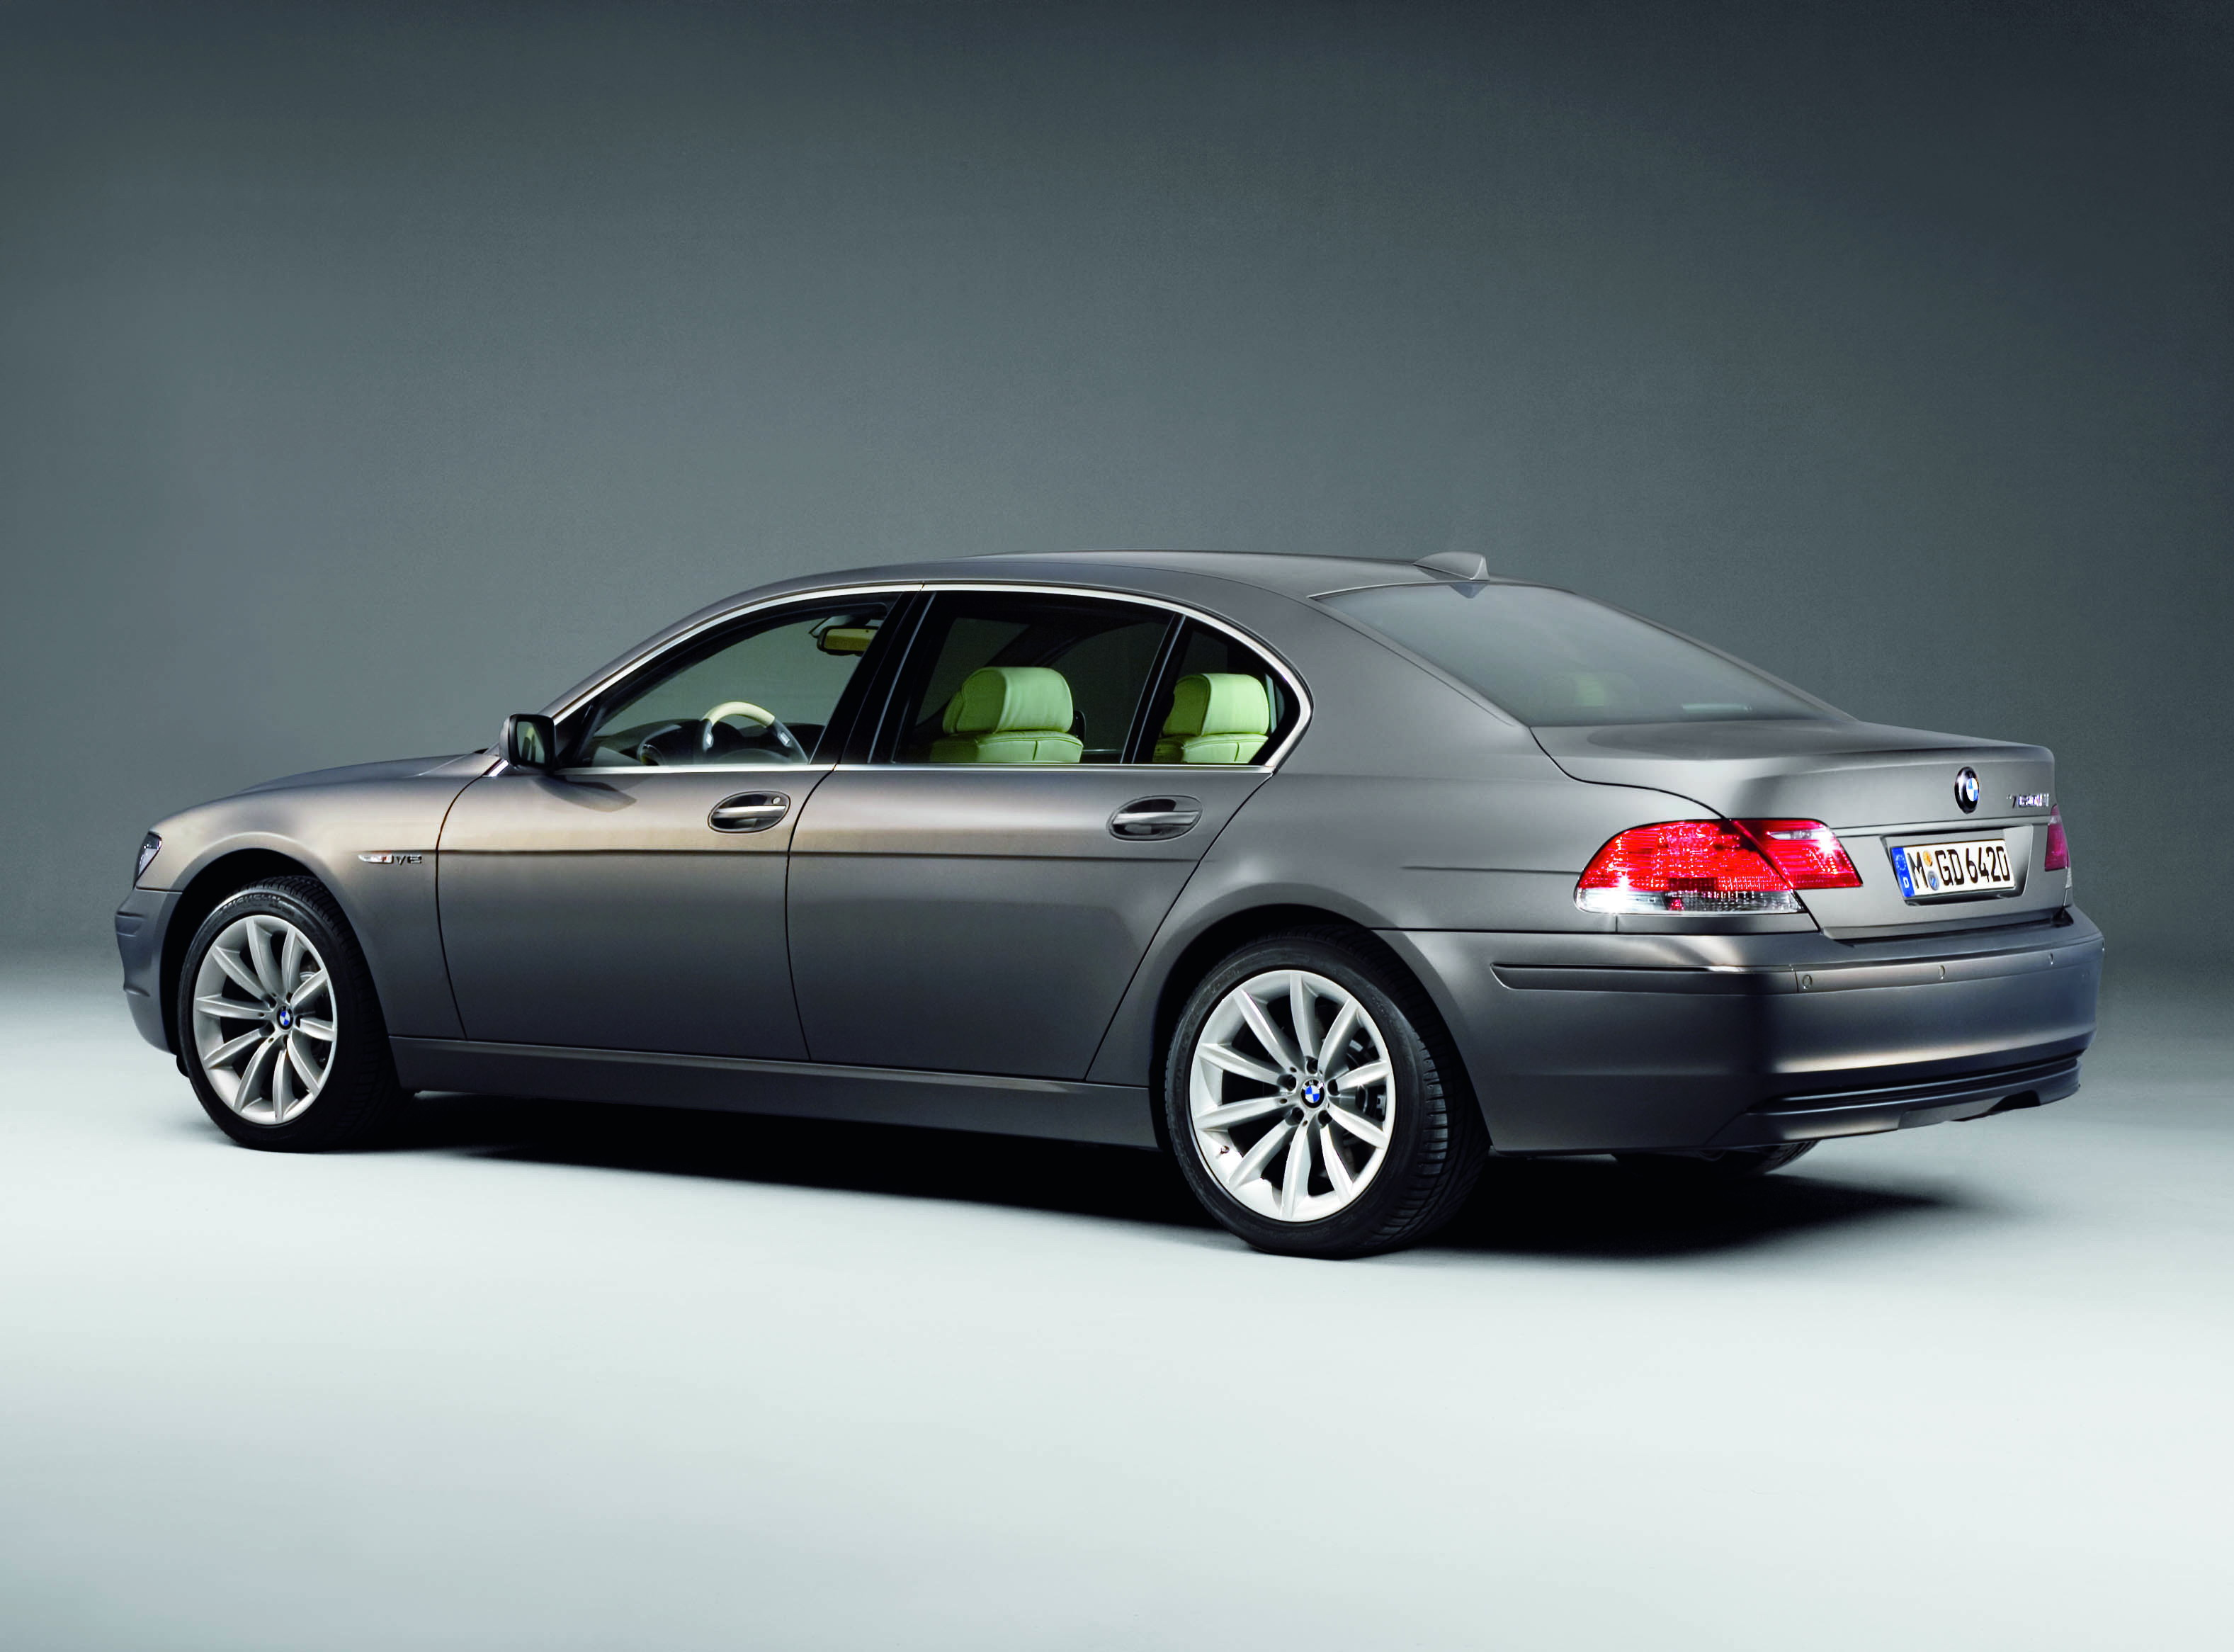 2007 BMW 7-Series Exclusive Edition Review - Top Speed